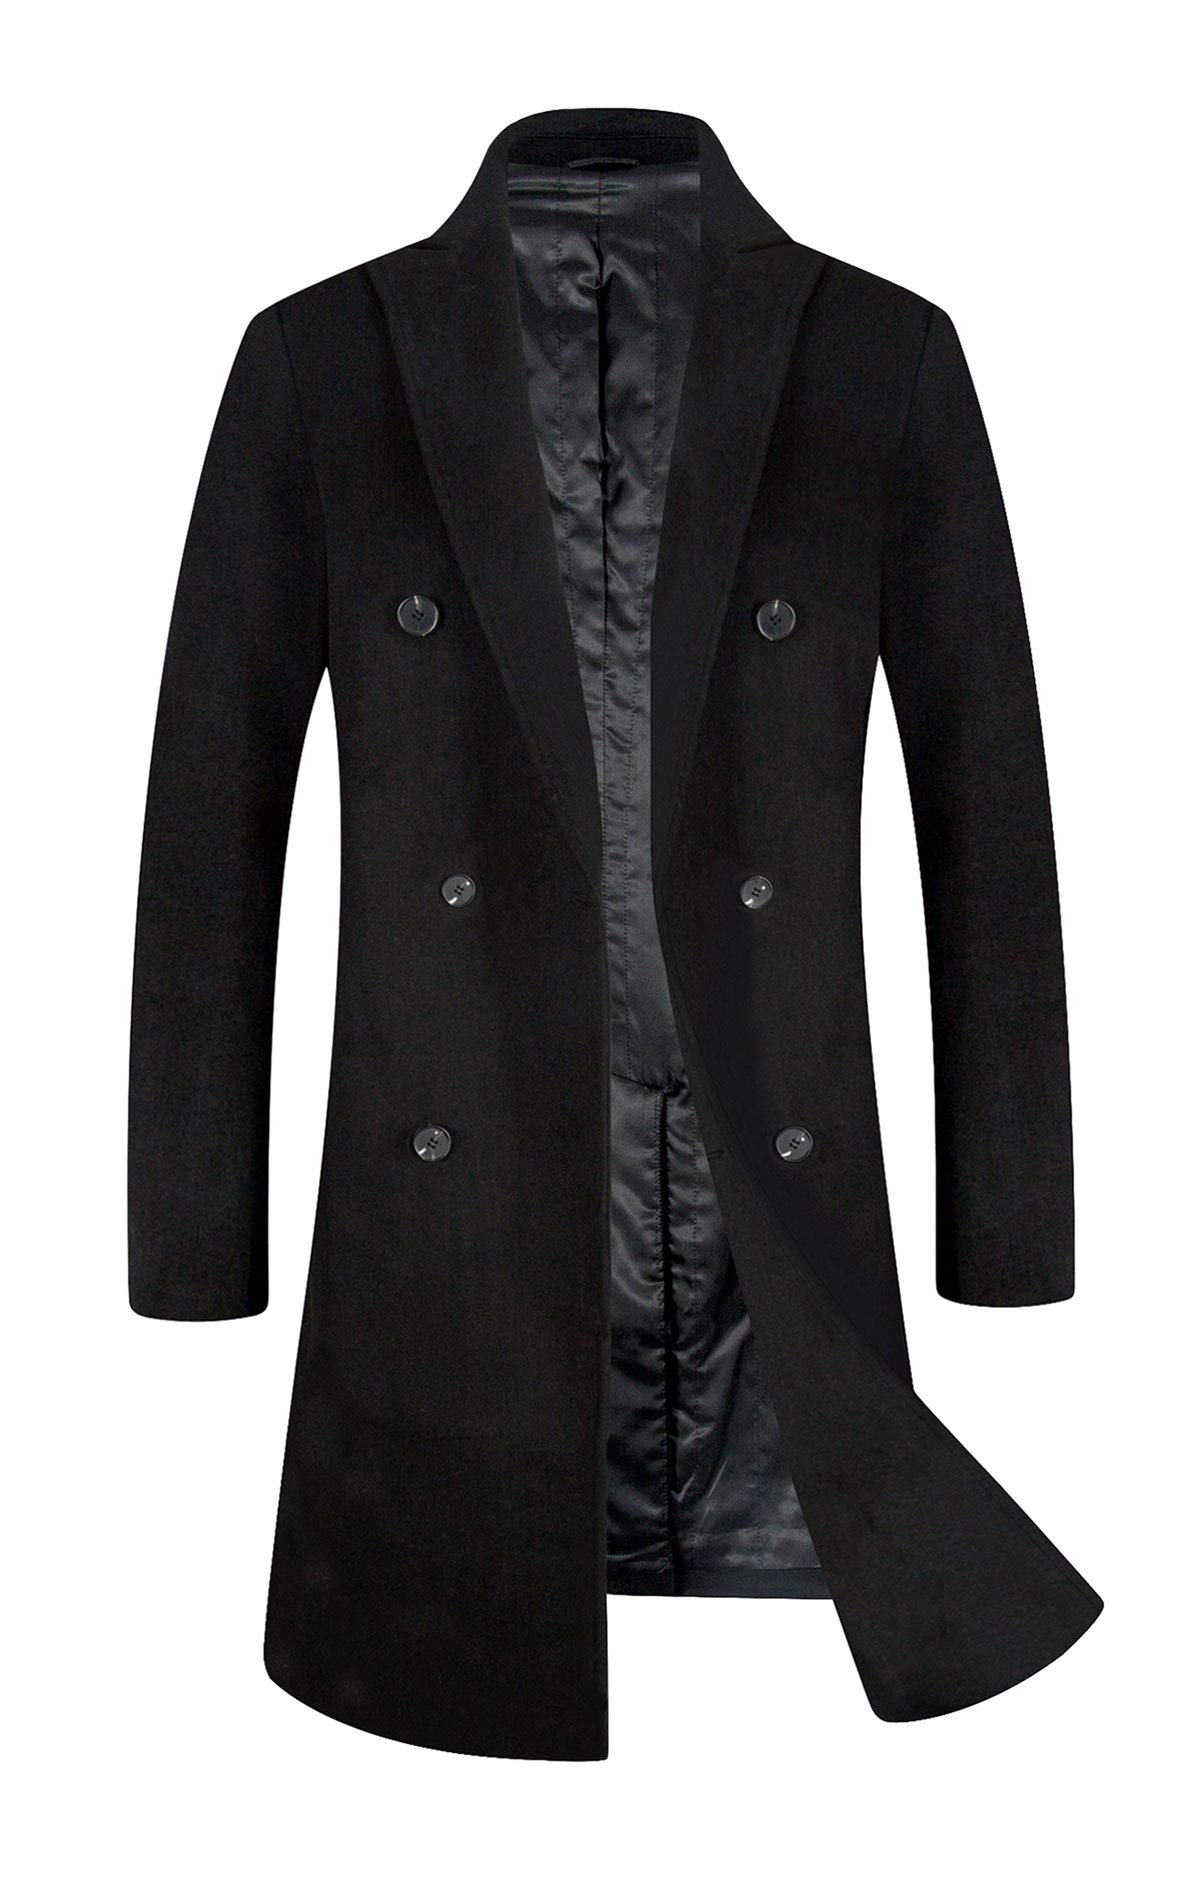 Men's Trench Coat Wool Blend French Long Jacket Thicken Business Top Coat Double Breasted 1802 Black XL by ELETOP